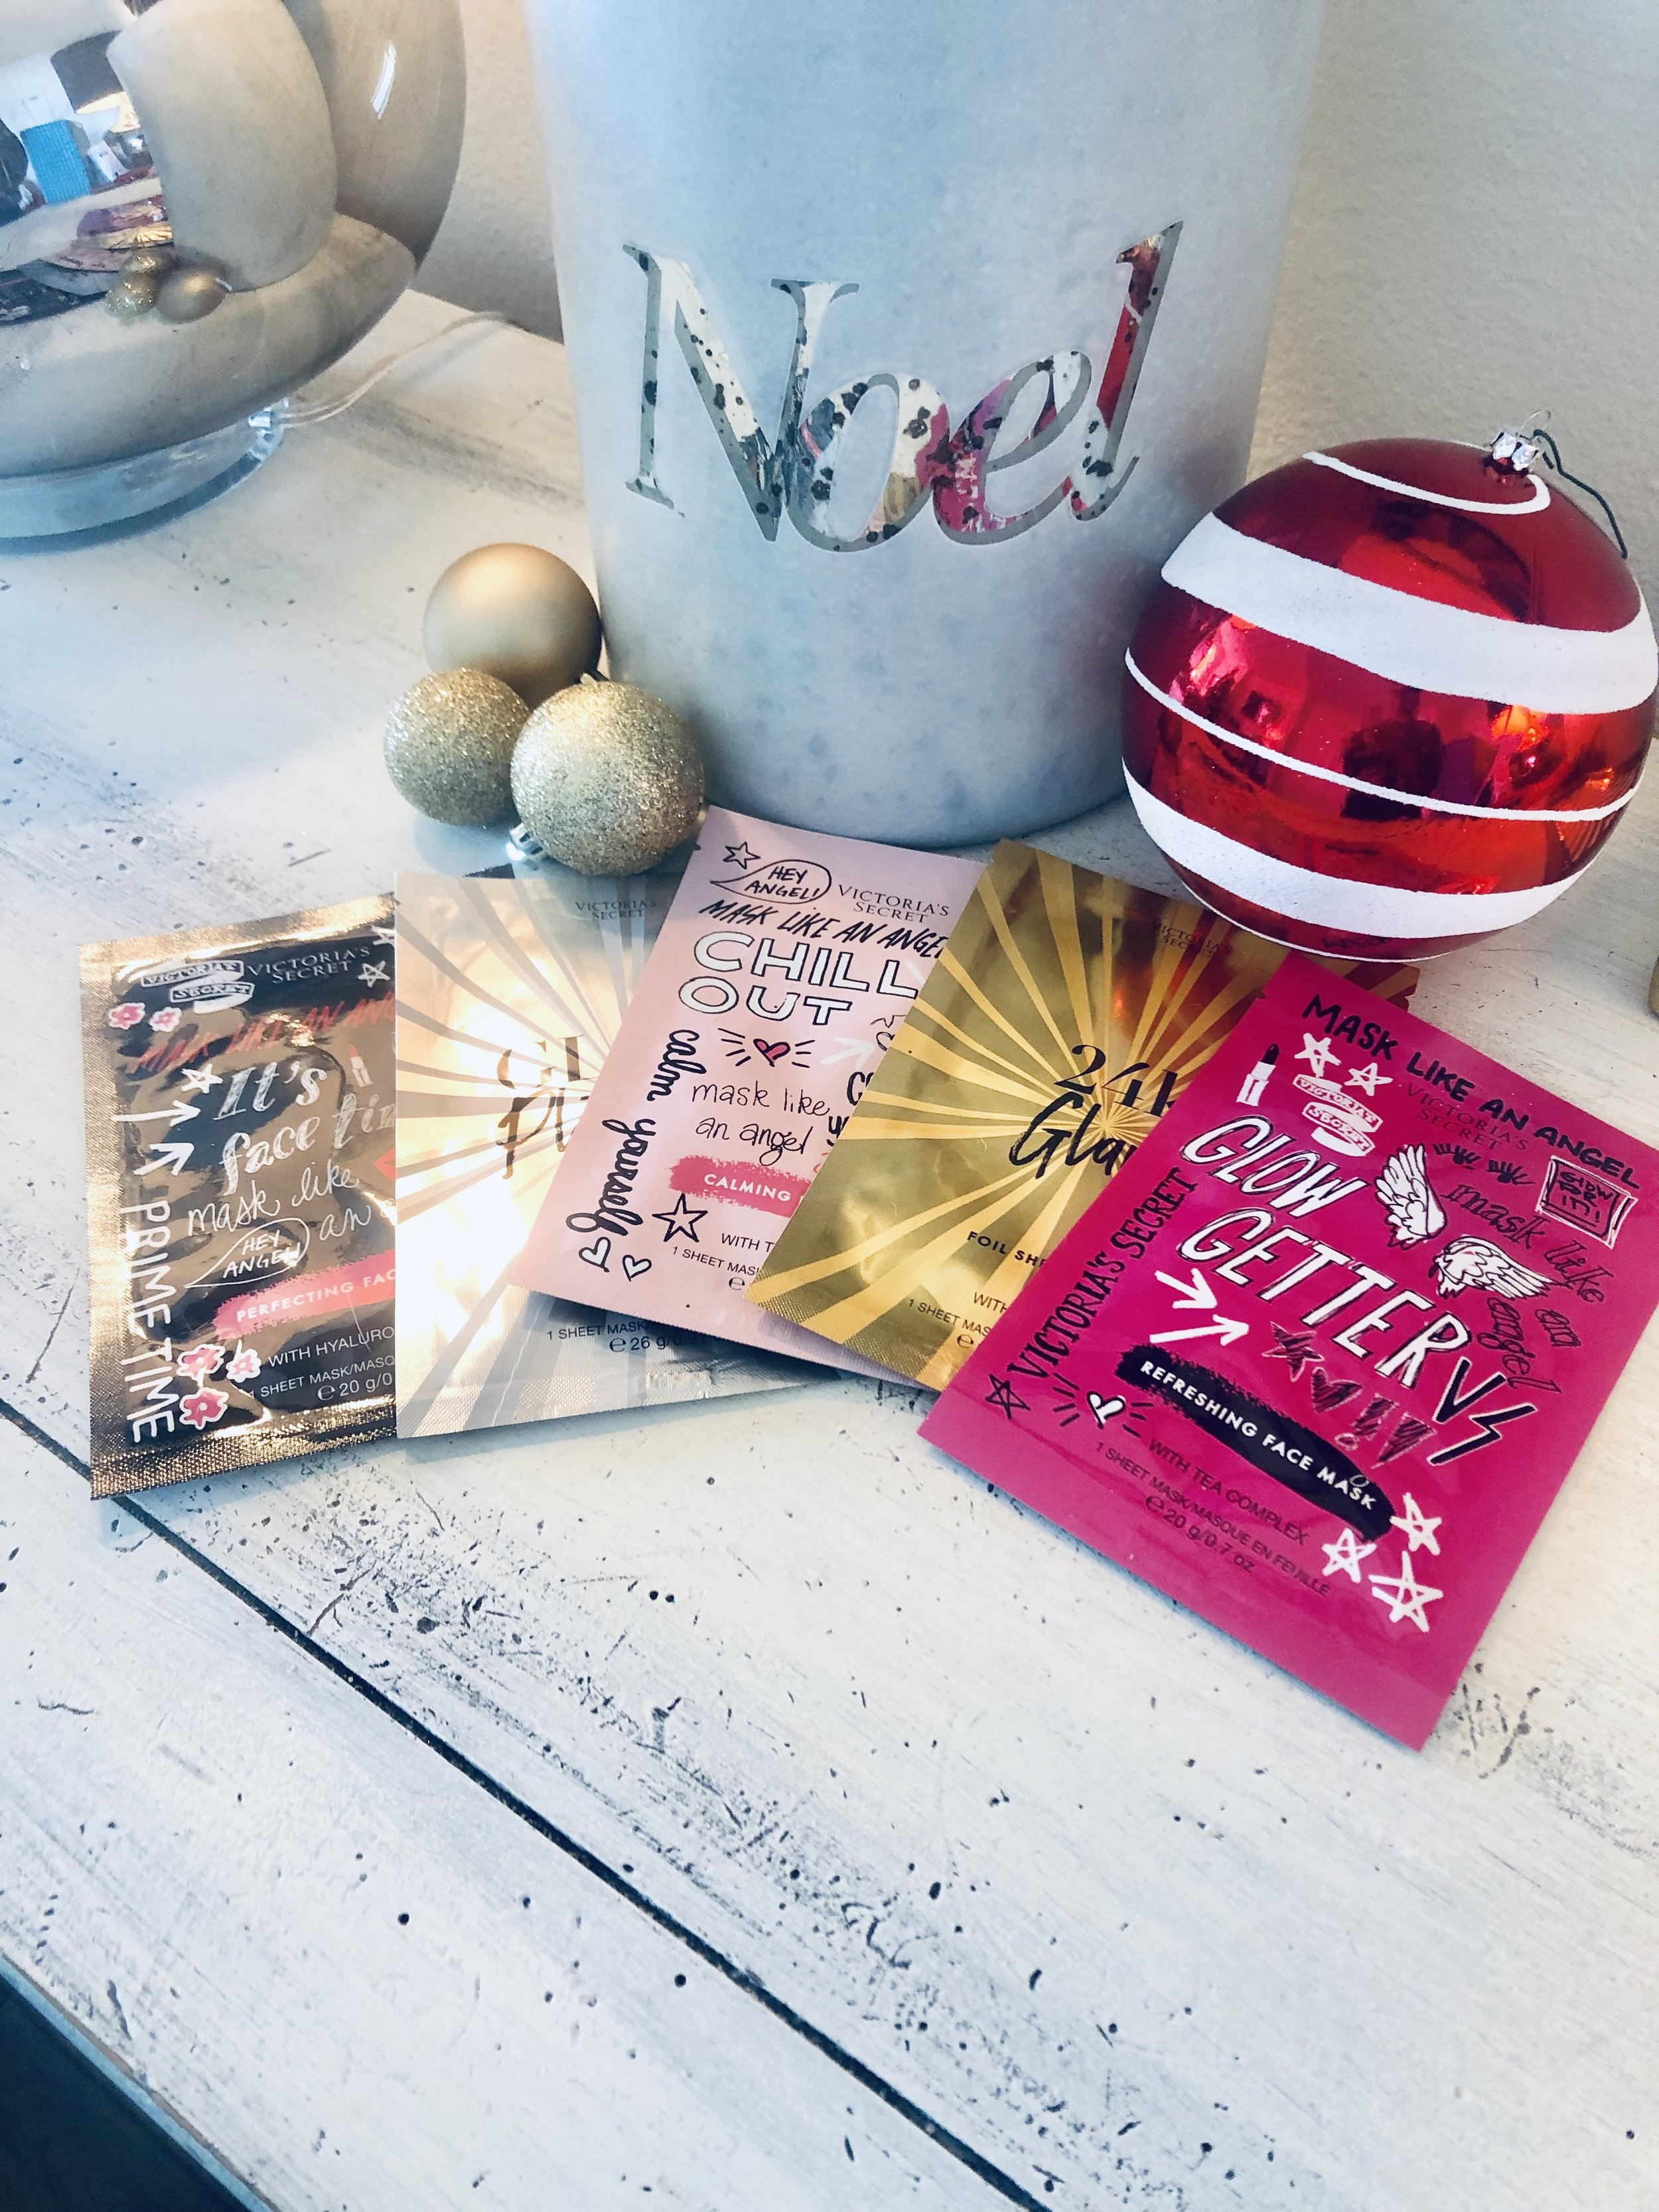 I am a big facial mask girl and love the  Calming Face Mask  from Victoria's Secret with tea tree oil - Perfect stocking stuffer!!